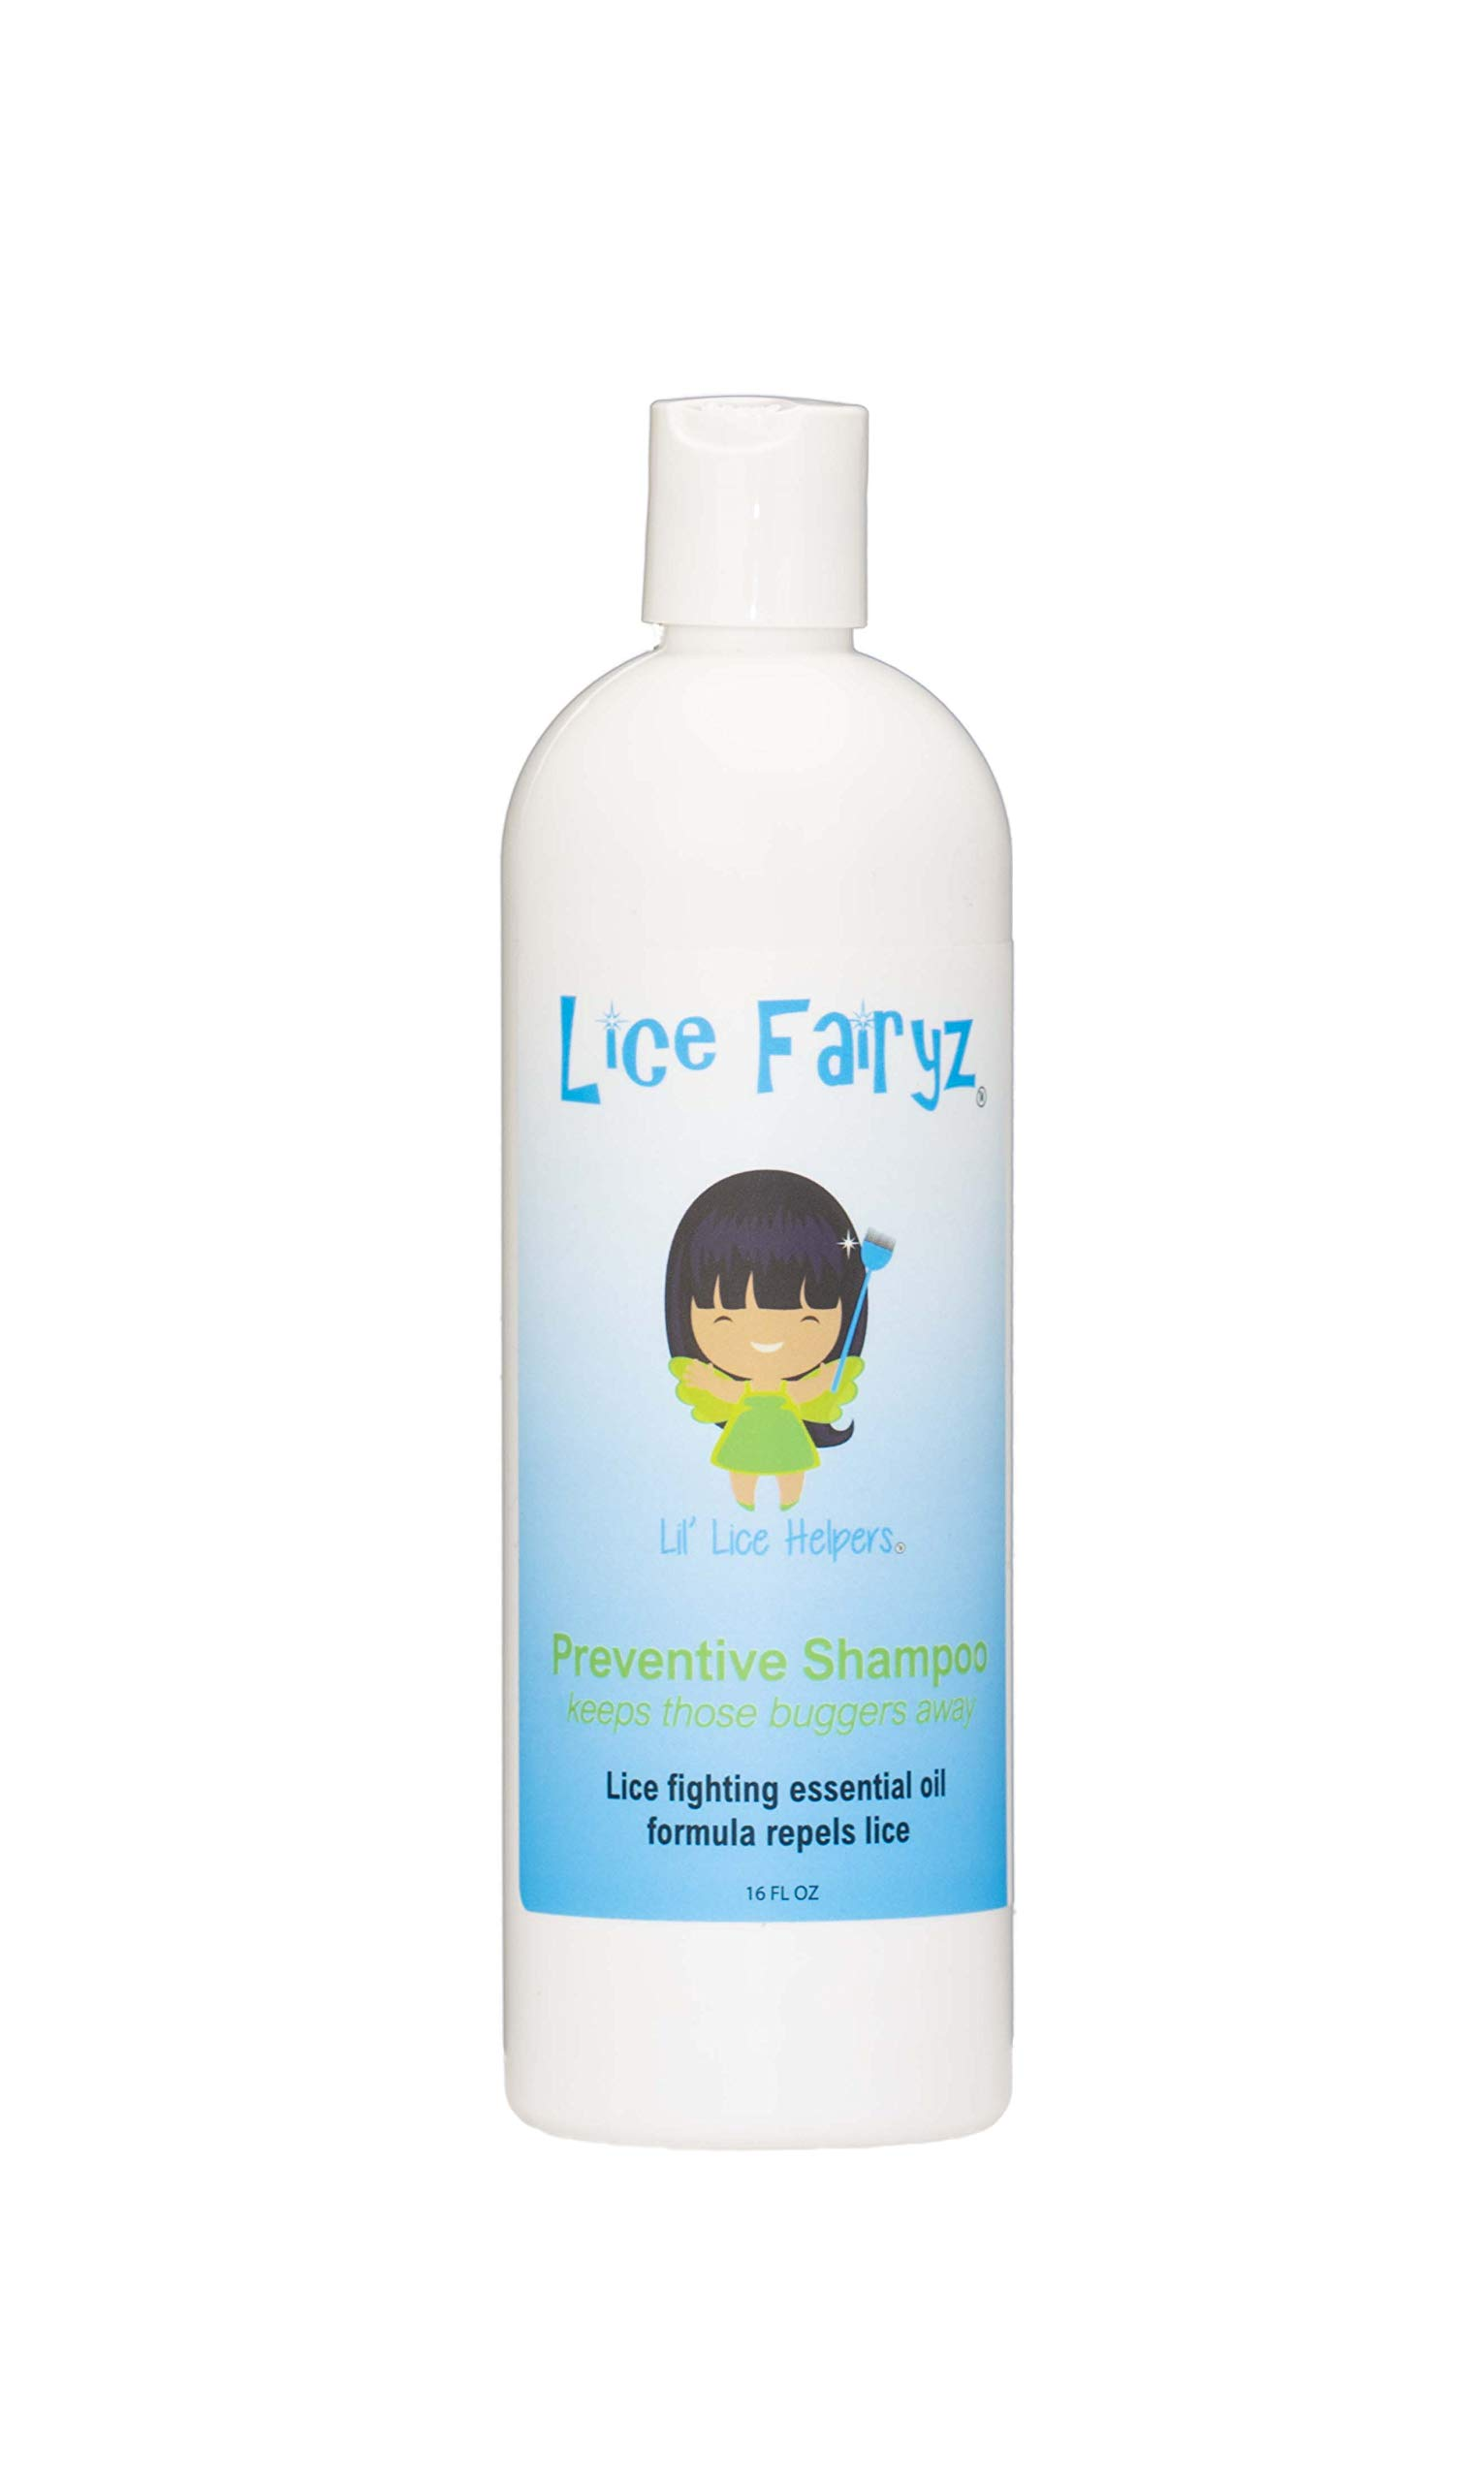 Lice Fairyz Daily Shampoo to Prevent Lice – Repel Head Lice with 100% Natural Essential Oil. Effective Against Super Lice. Use Before or After Lice Treatment. Non-Toxic. No Pesticides. 16 oz